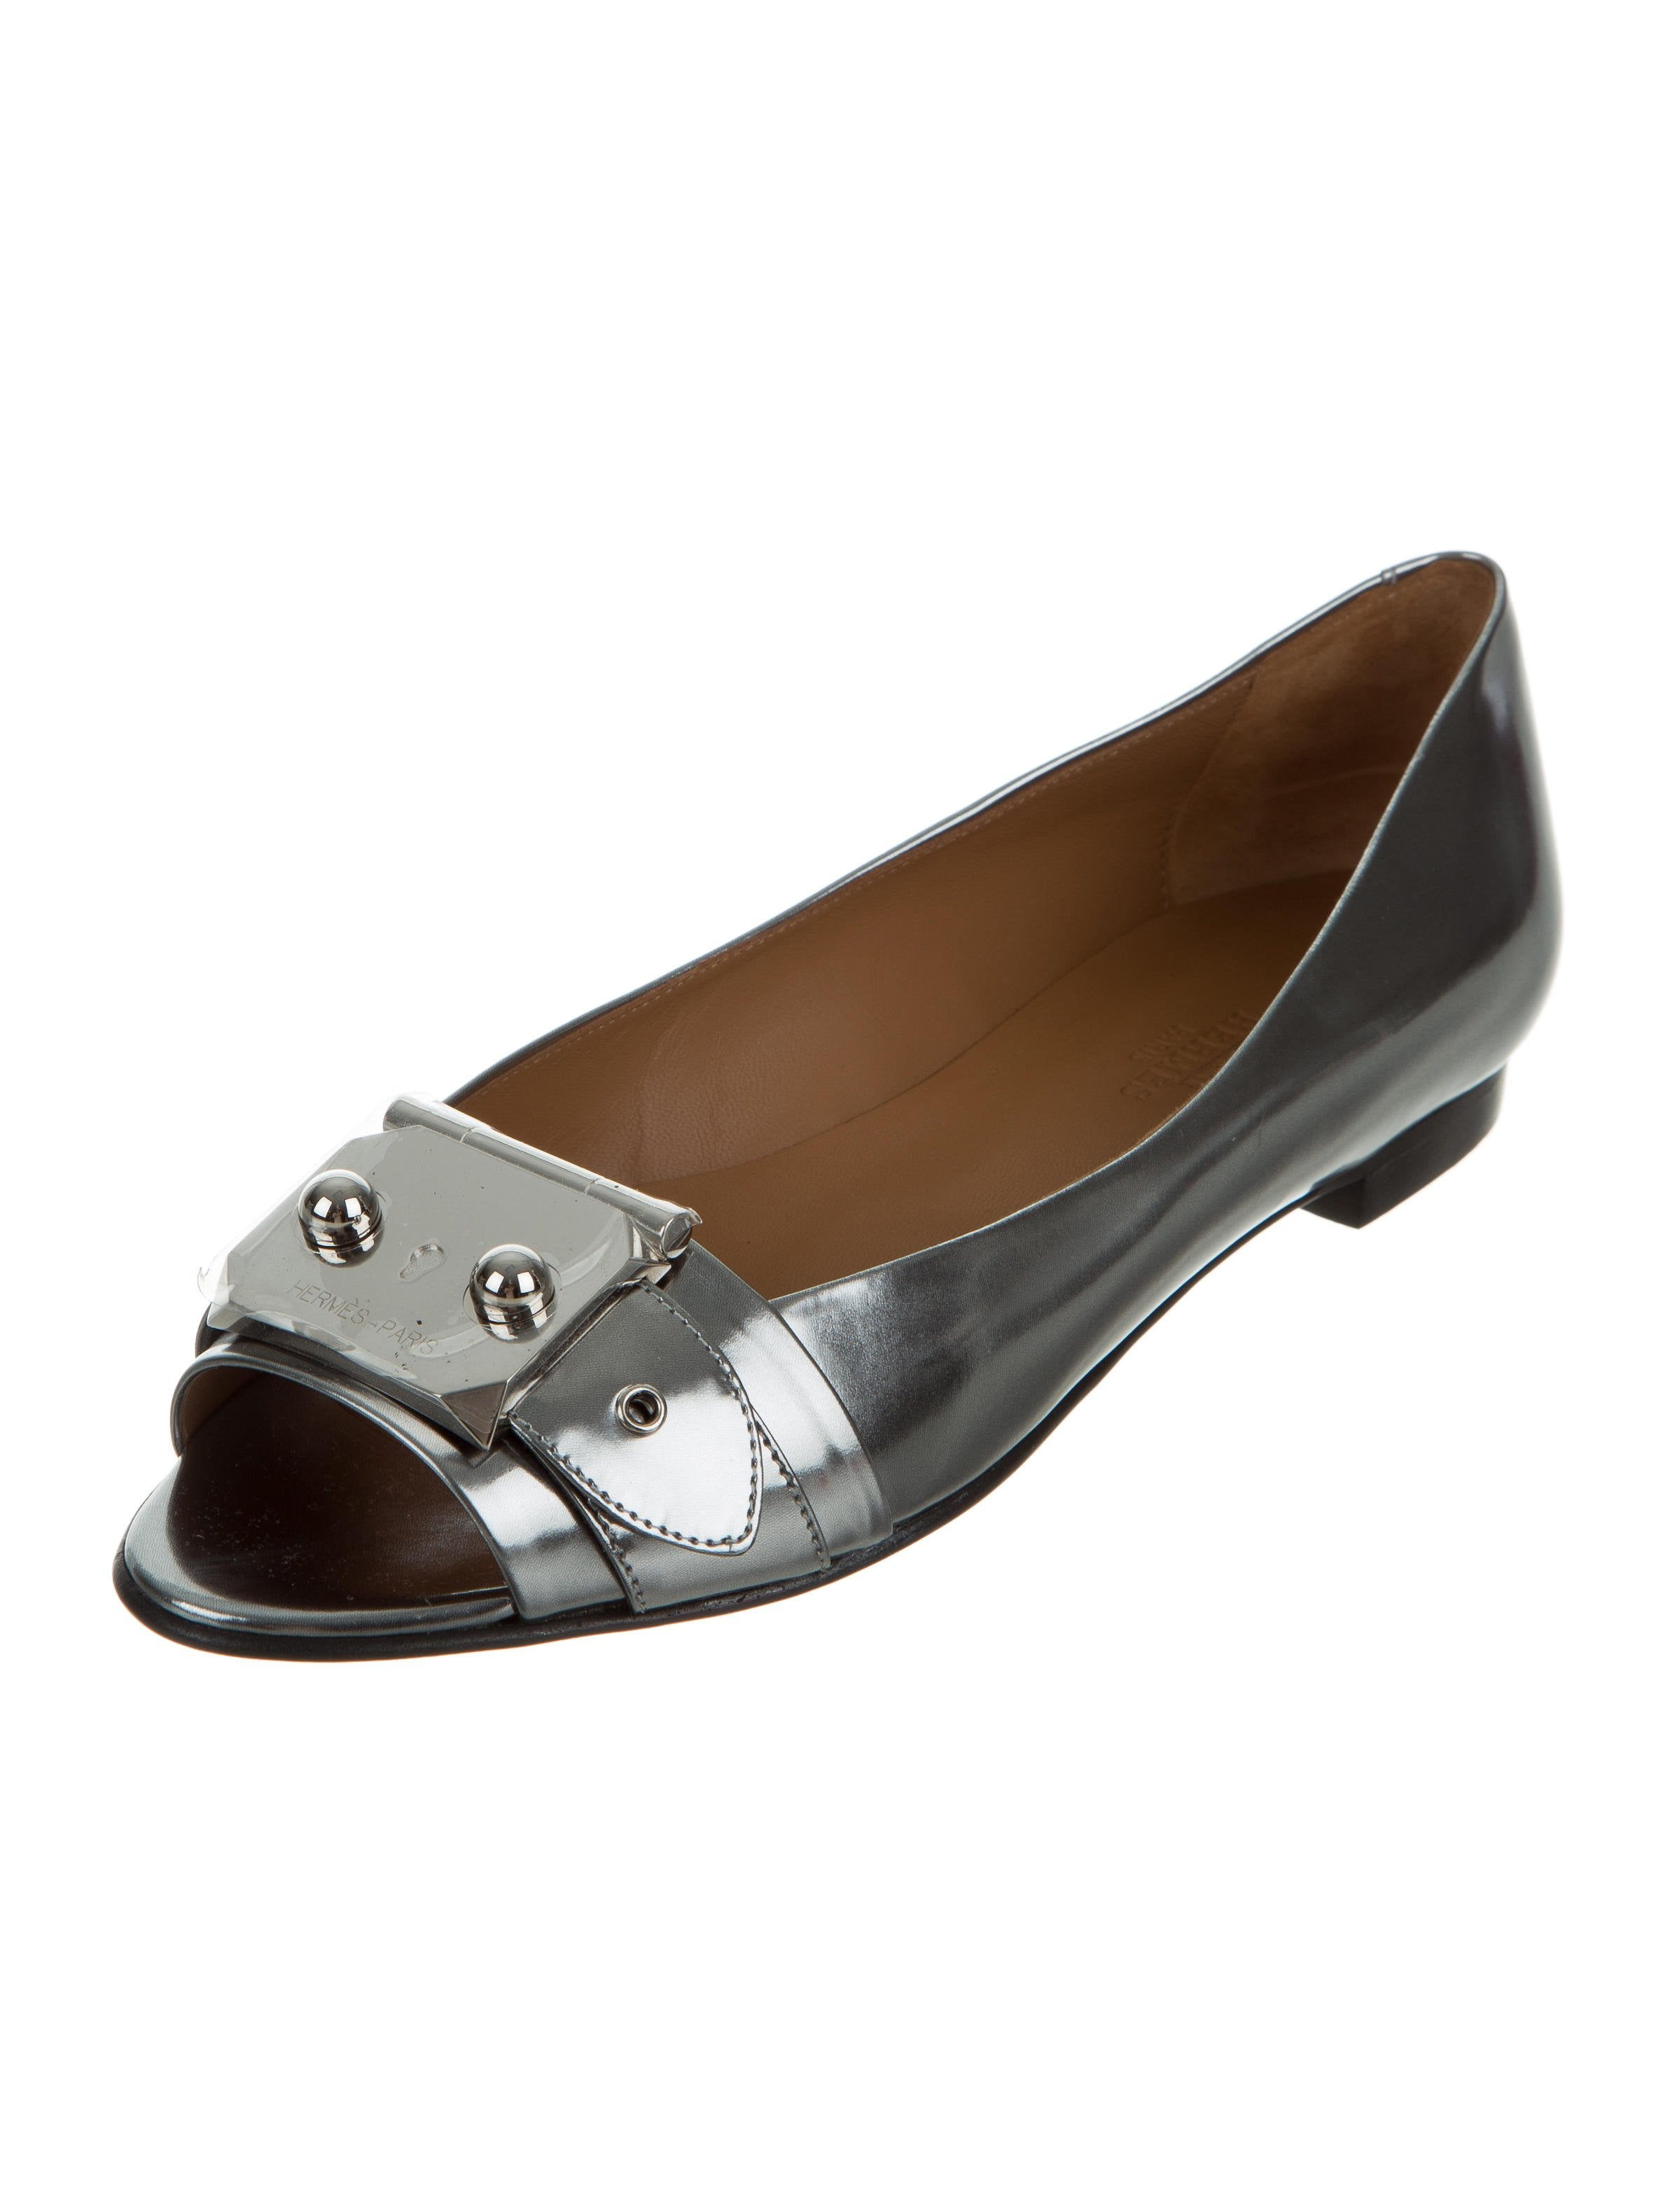 Hermès Metallic Buckle Flats sale collections low cost for sale free shipping big sale hot sale for sale S2jzziIr